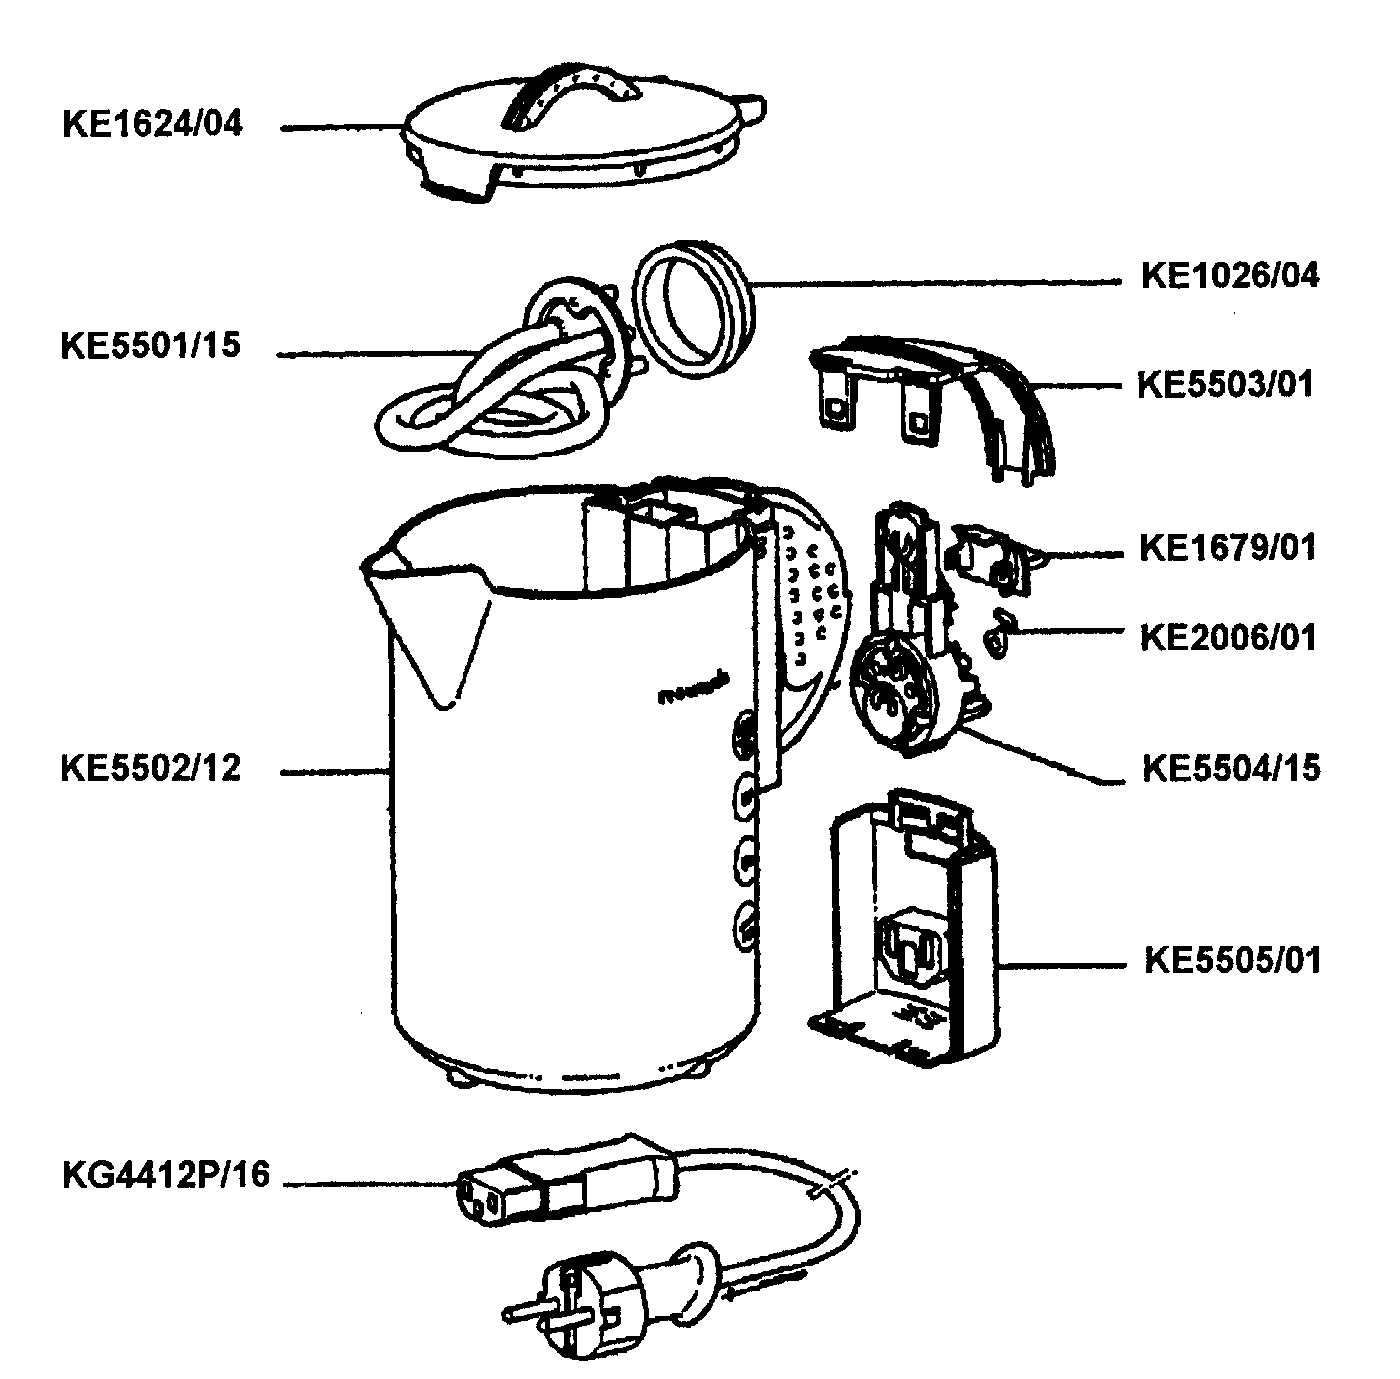 Go Diagram Of A Kettle Wiring Diagram